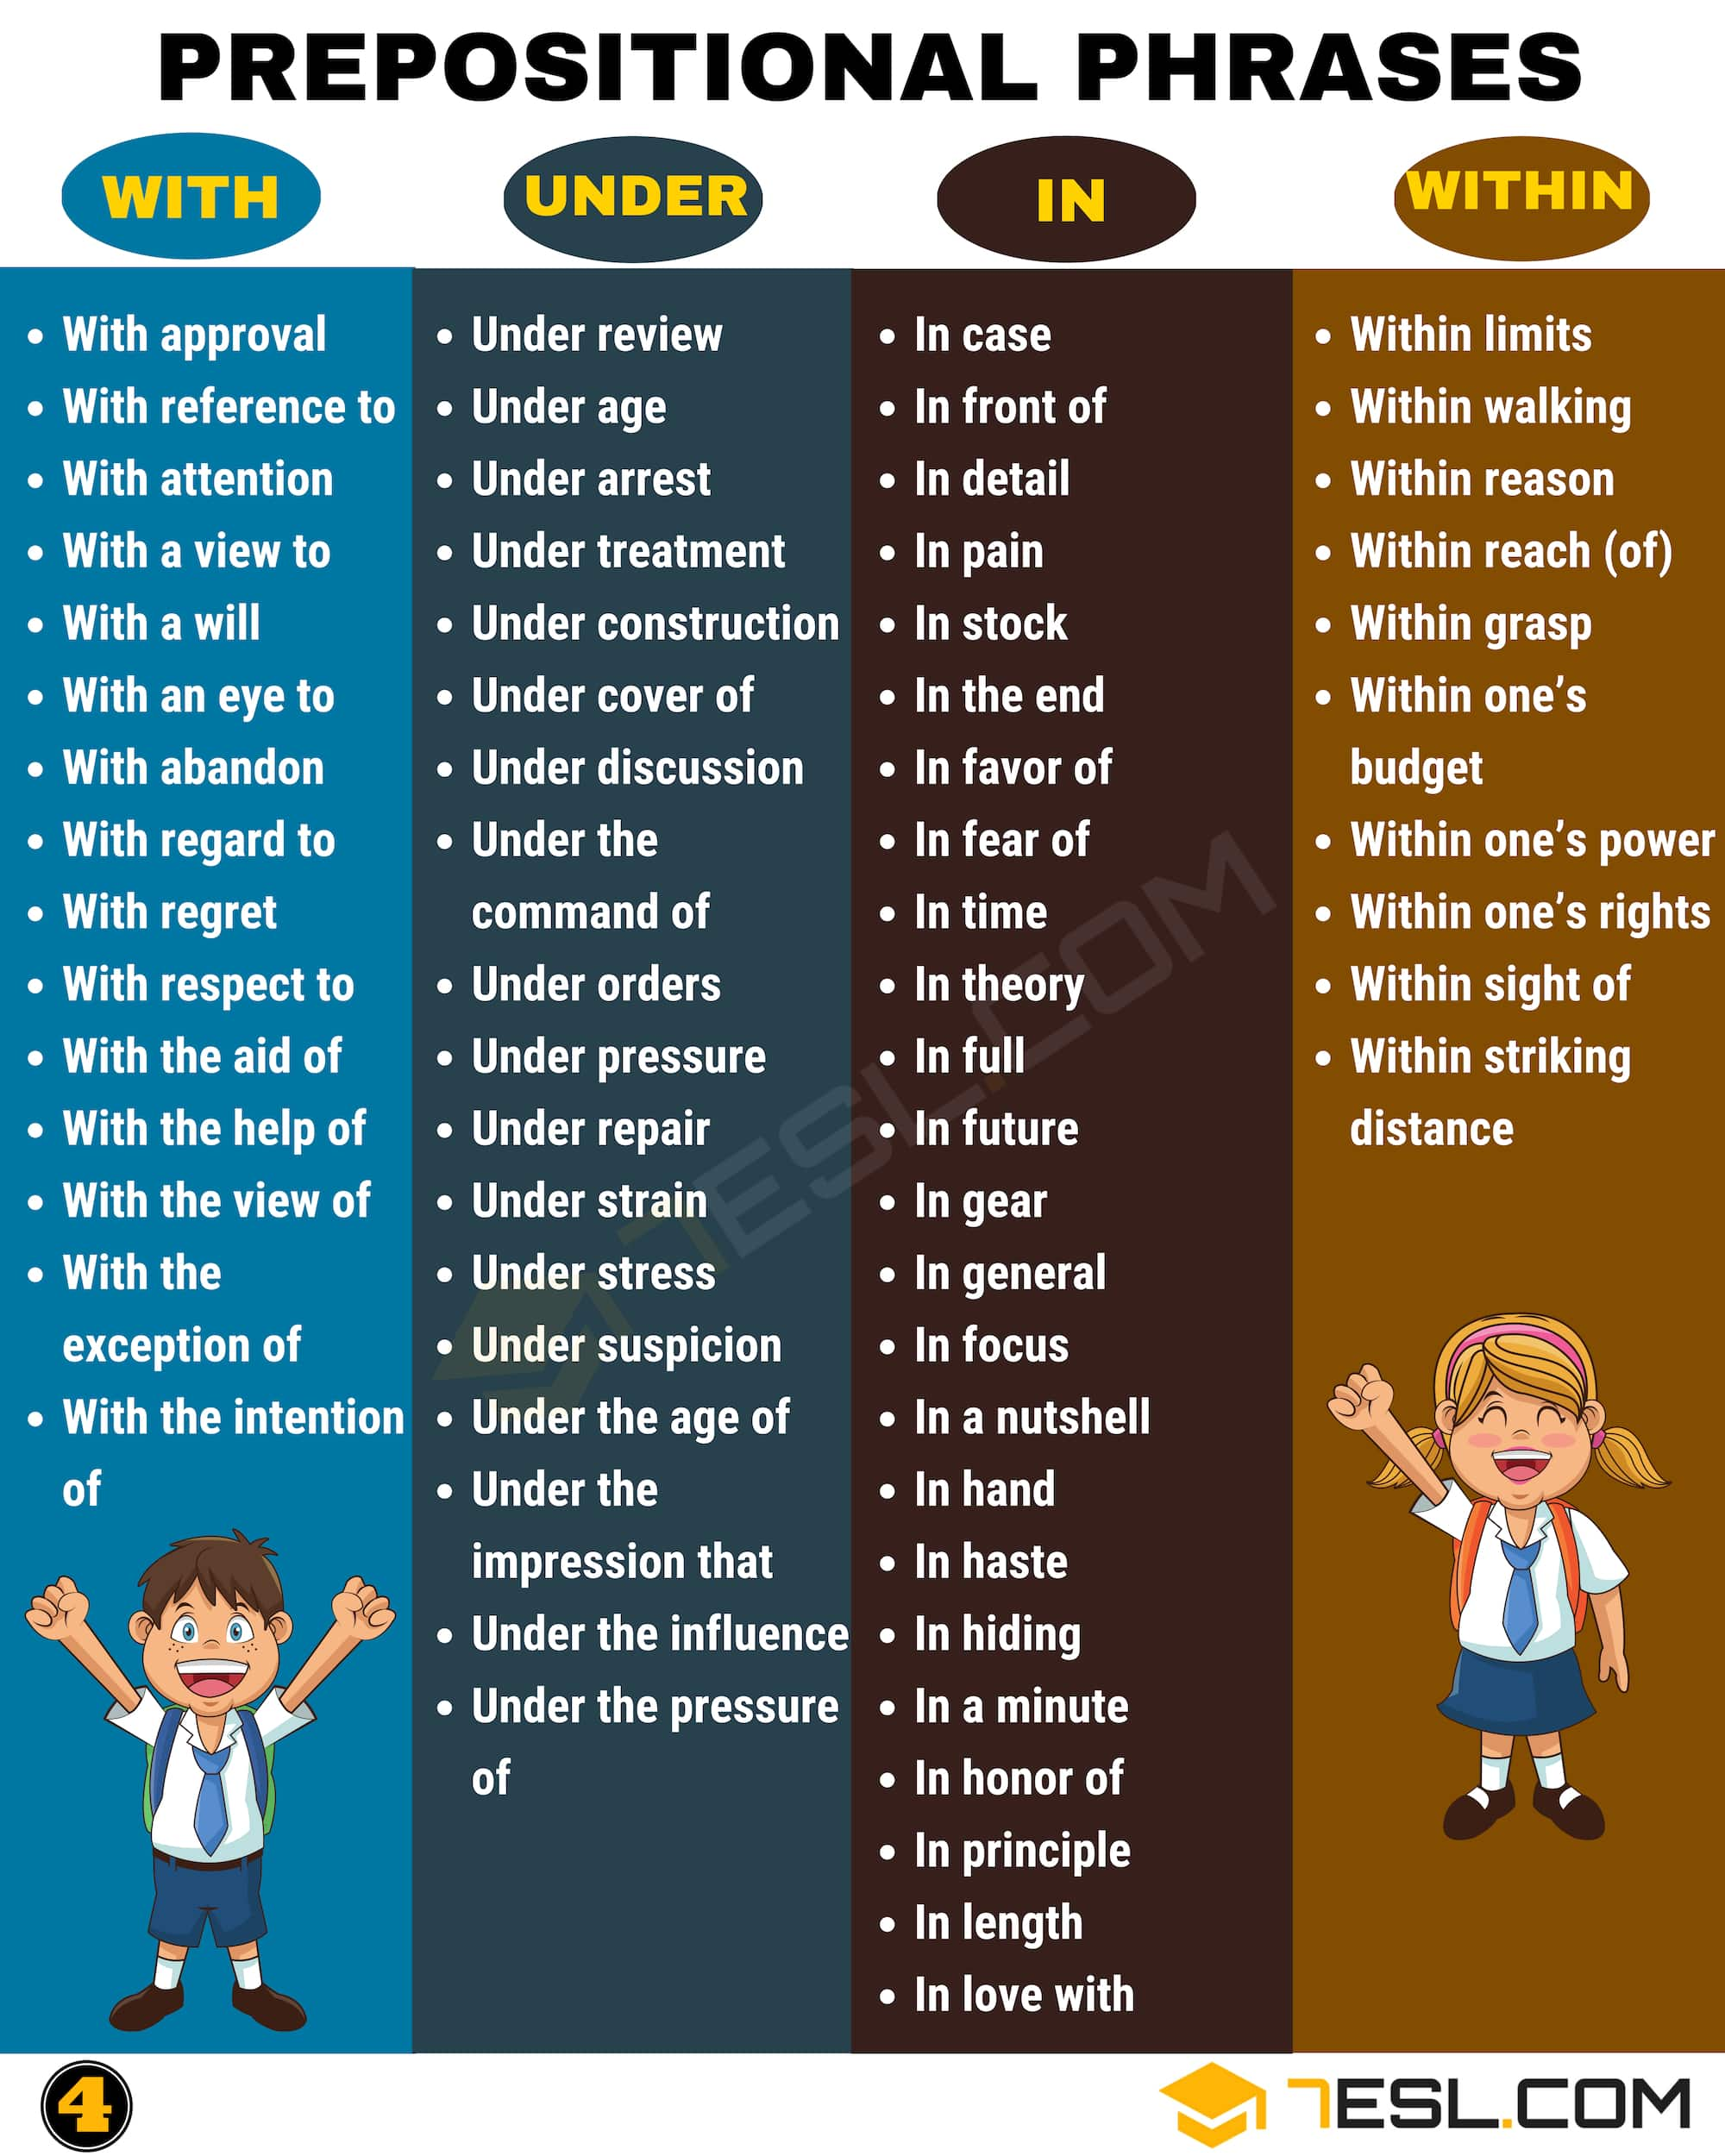 Prepositional Phrases with WITH, UNDER, IN, WITHIN | Prepositional Phrase Examples Image 4